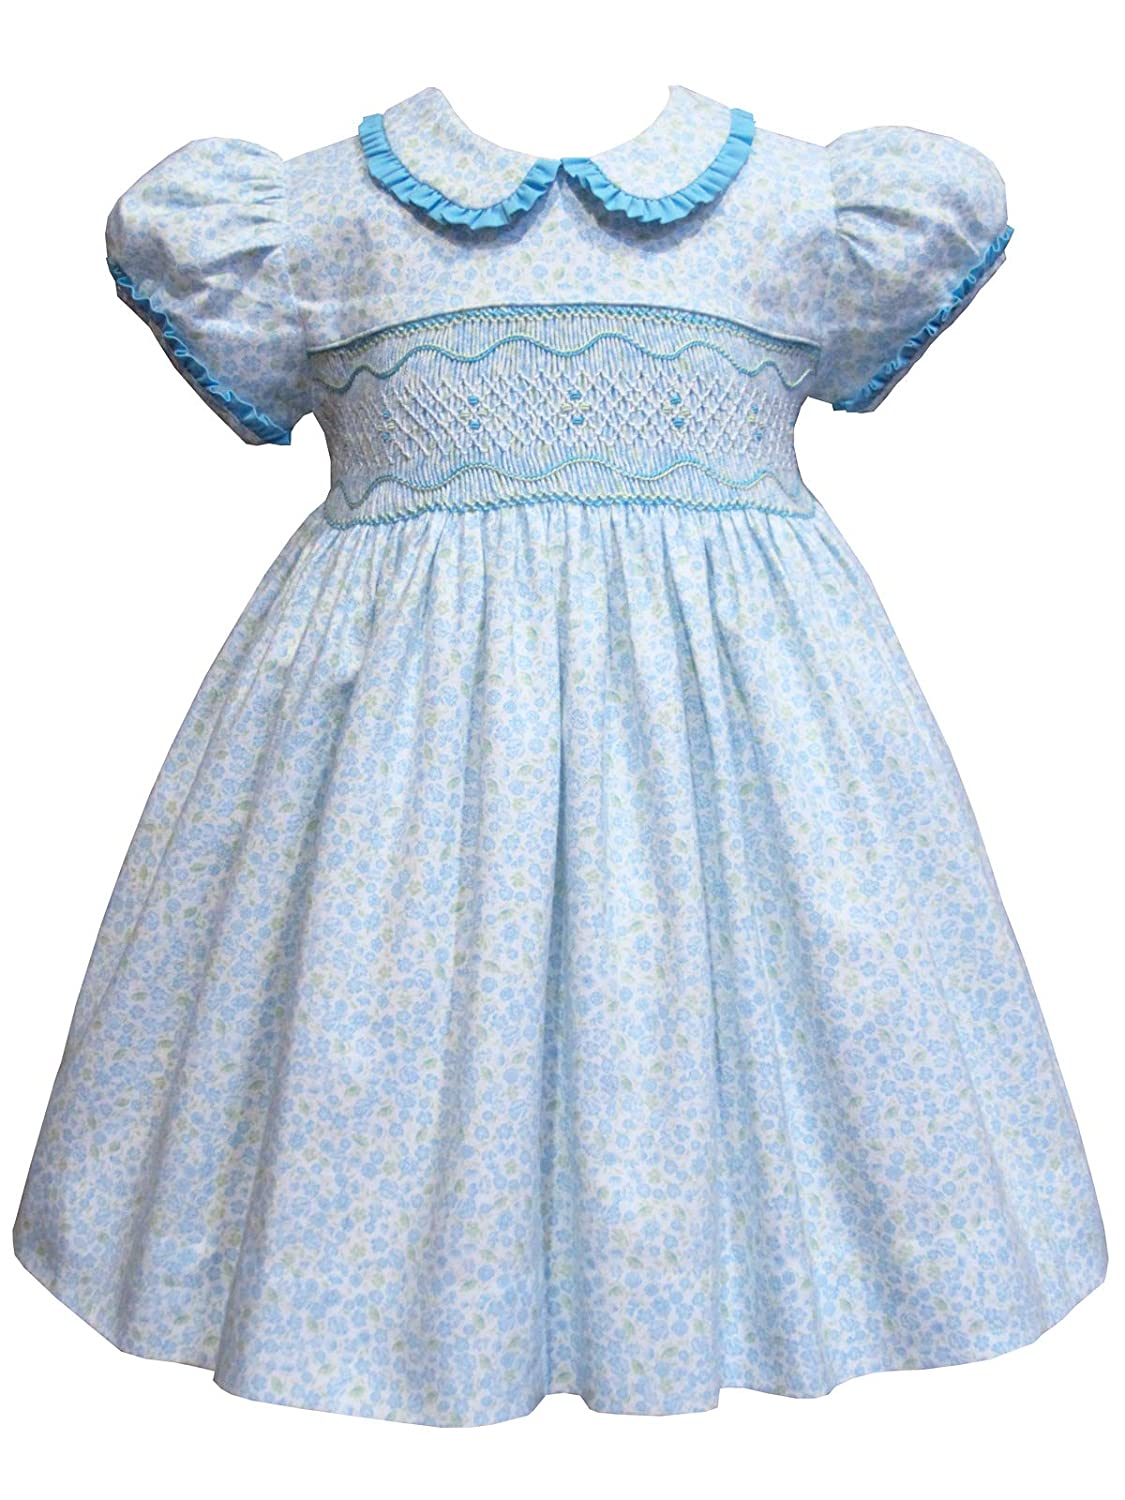 b9d7c1be8dcf Amazon.com: Blue Floral Heirloom Girls Easter Smocked Classic Dress:  Clothing